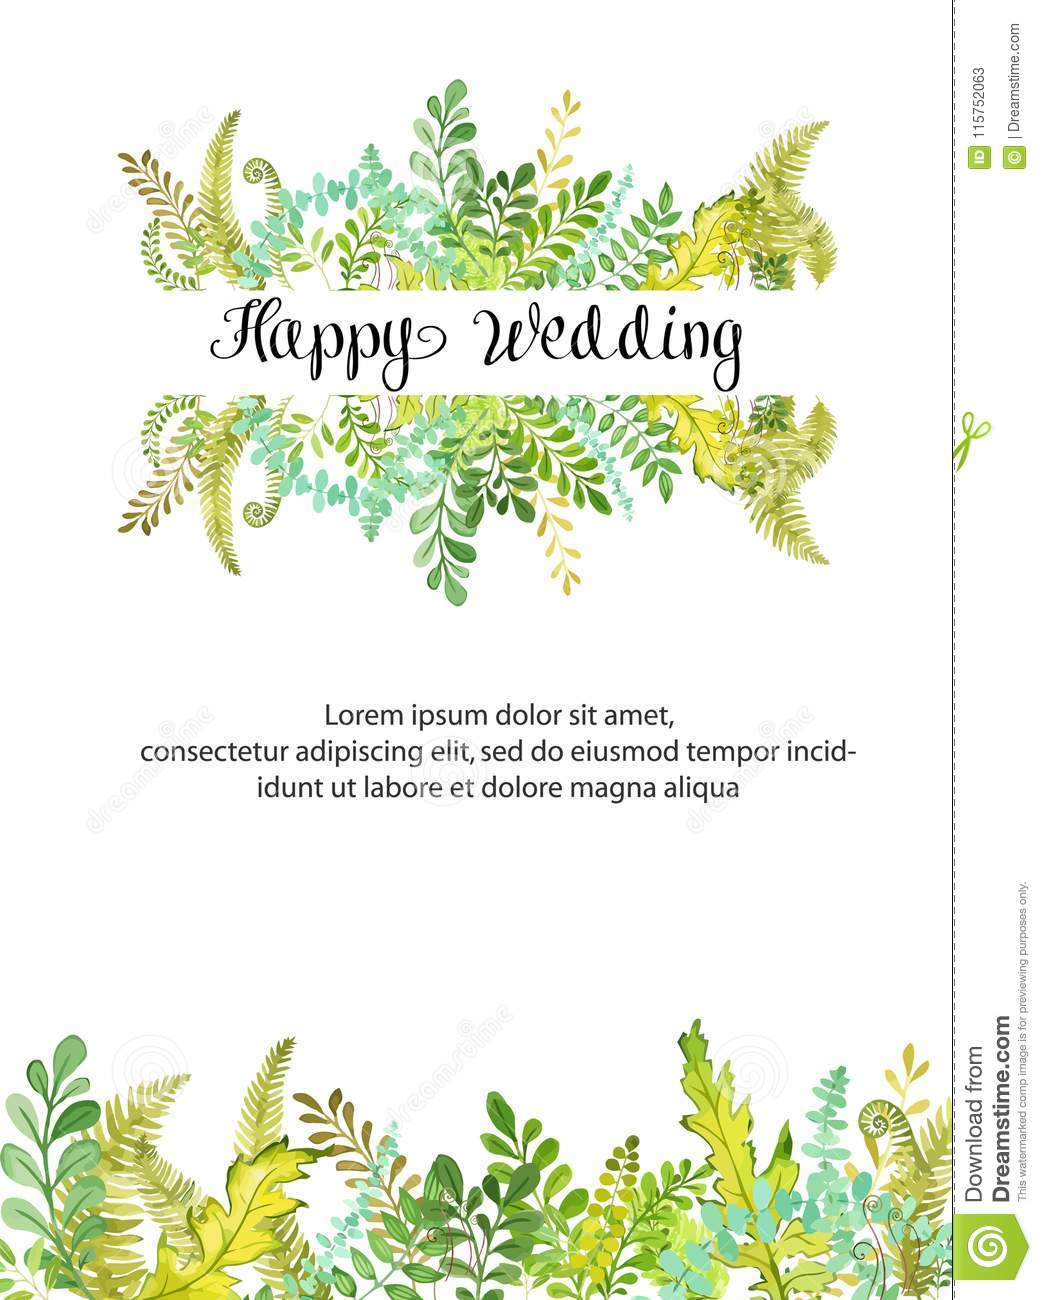 happy wedding banner background invitation modern card design vector illustration with watercolor style of foliage stock illustration illustration of greenery date 115752063 https www dreamstime com happy wedding banner background invitation modern card design vector illustration watercolor style foliage happy wedding image115752063